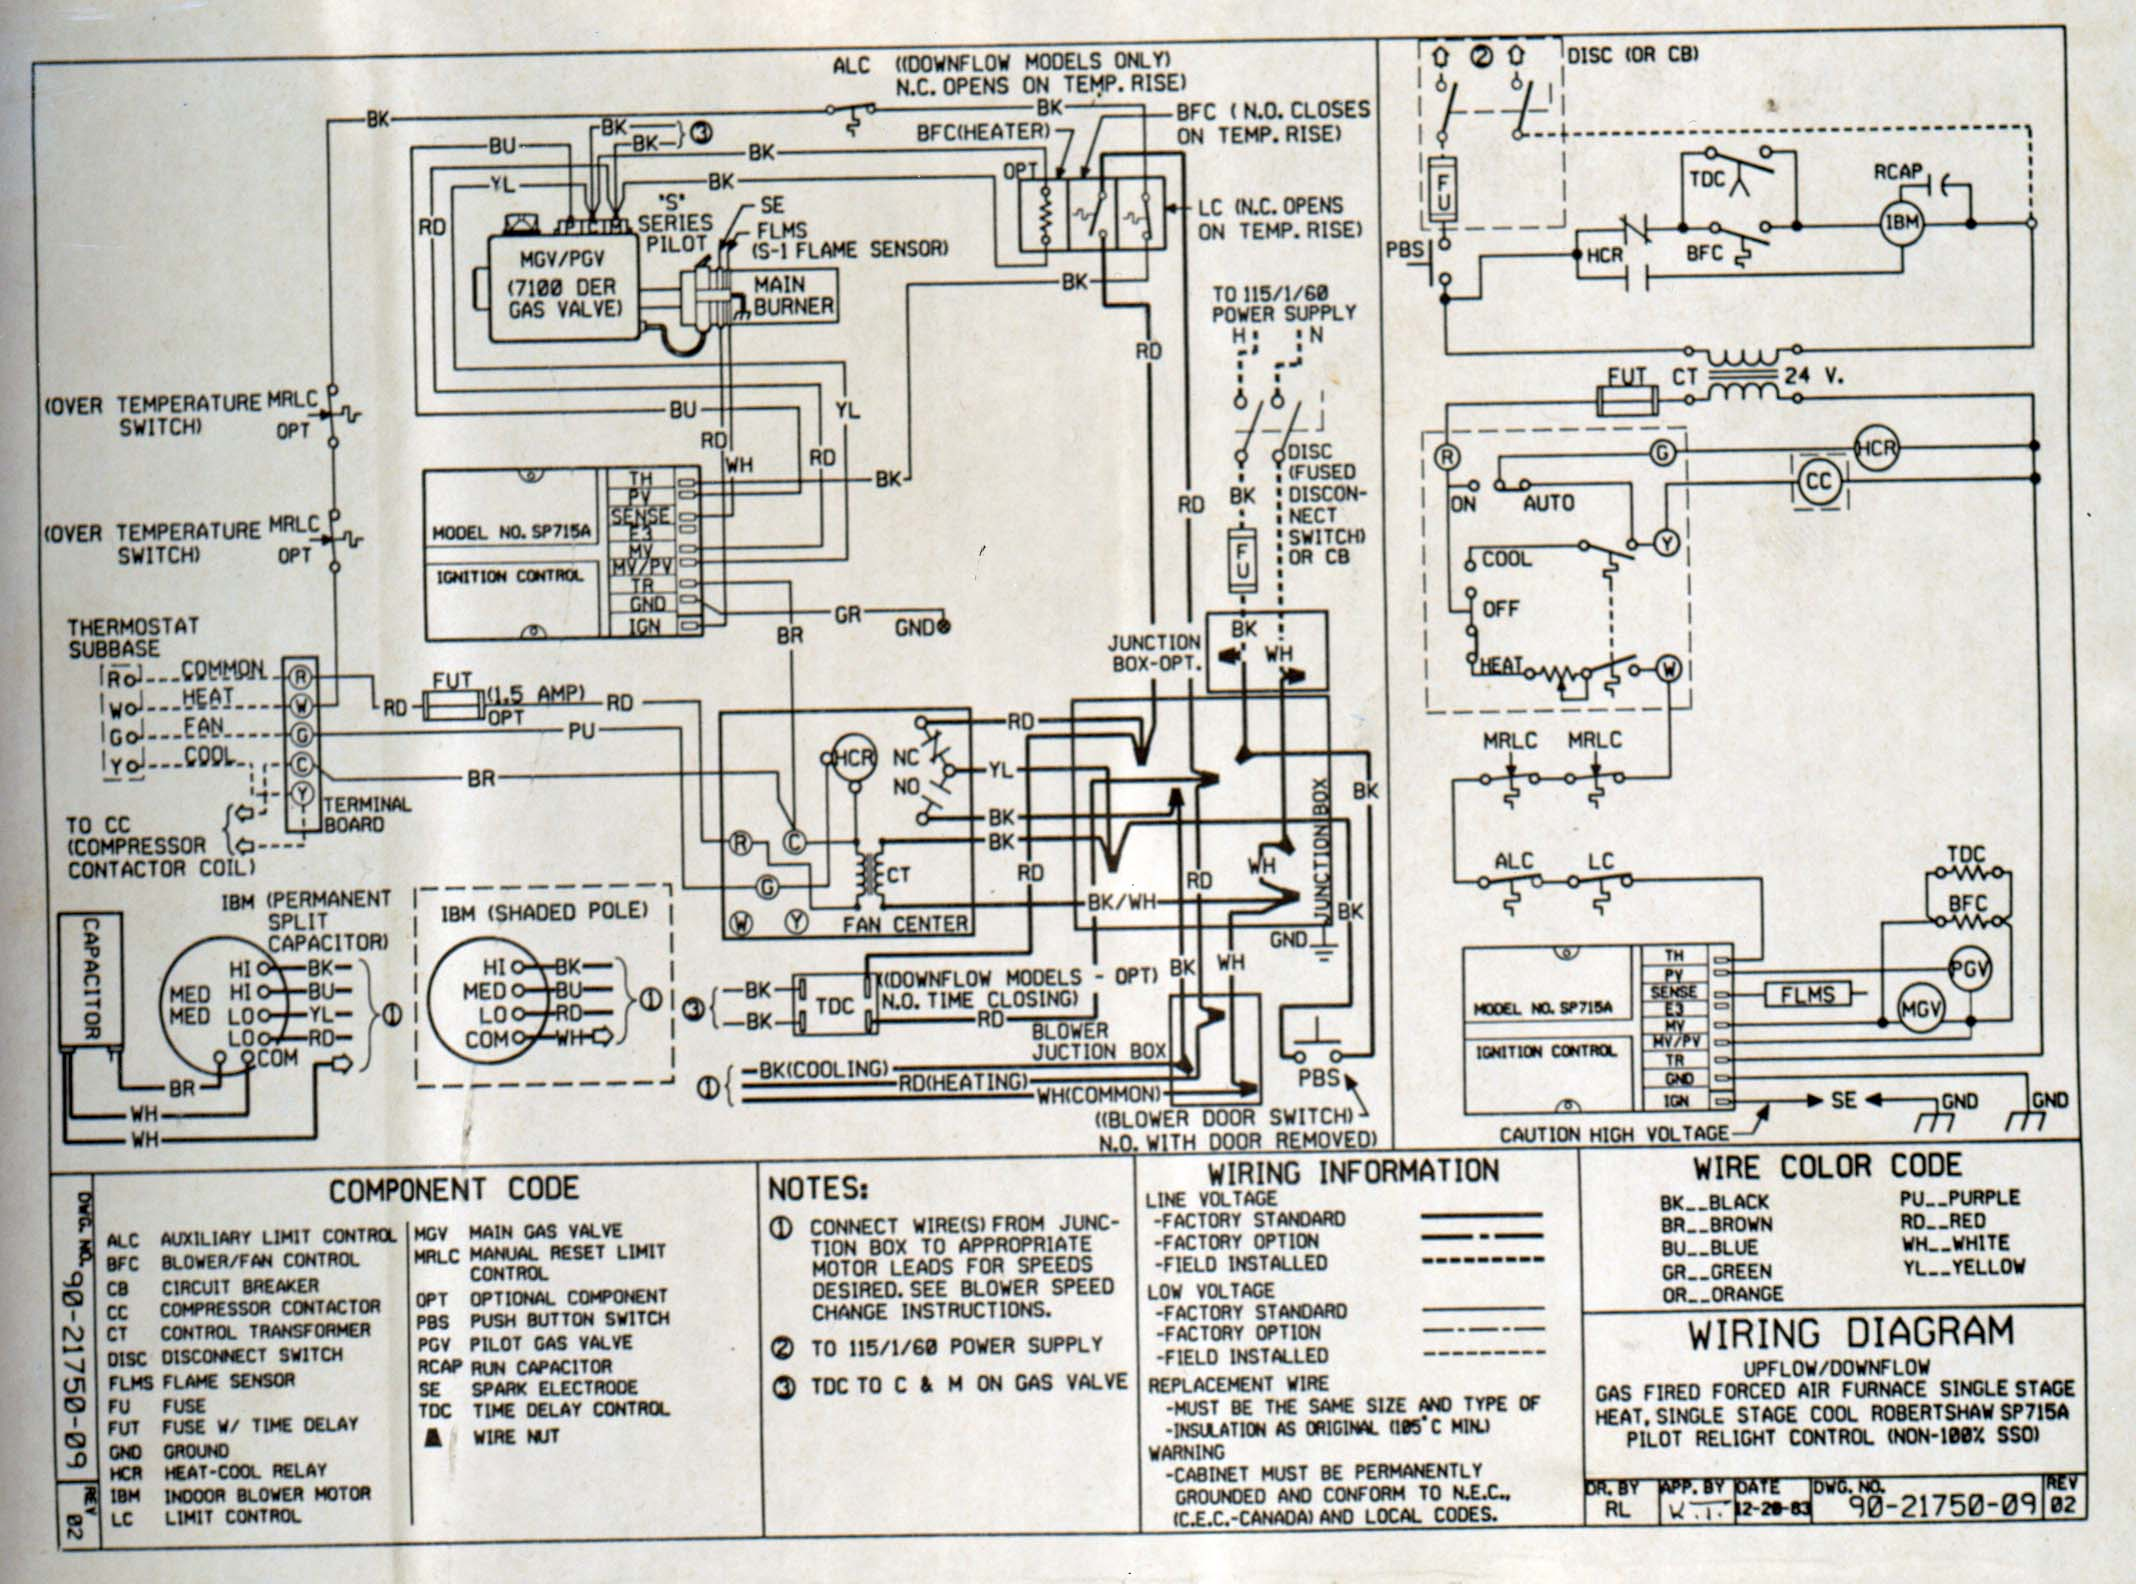 furnace fan won't stop running after the heating cycle is done hvac control wiring circuit diagram hvac control wiring schematics